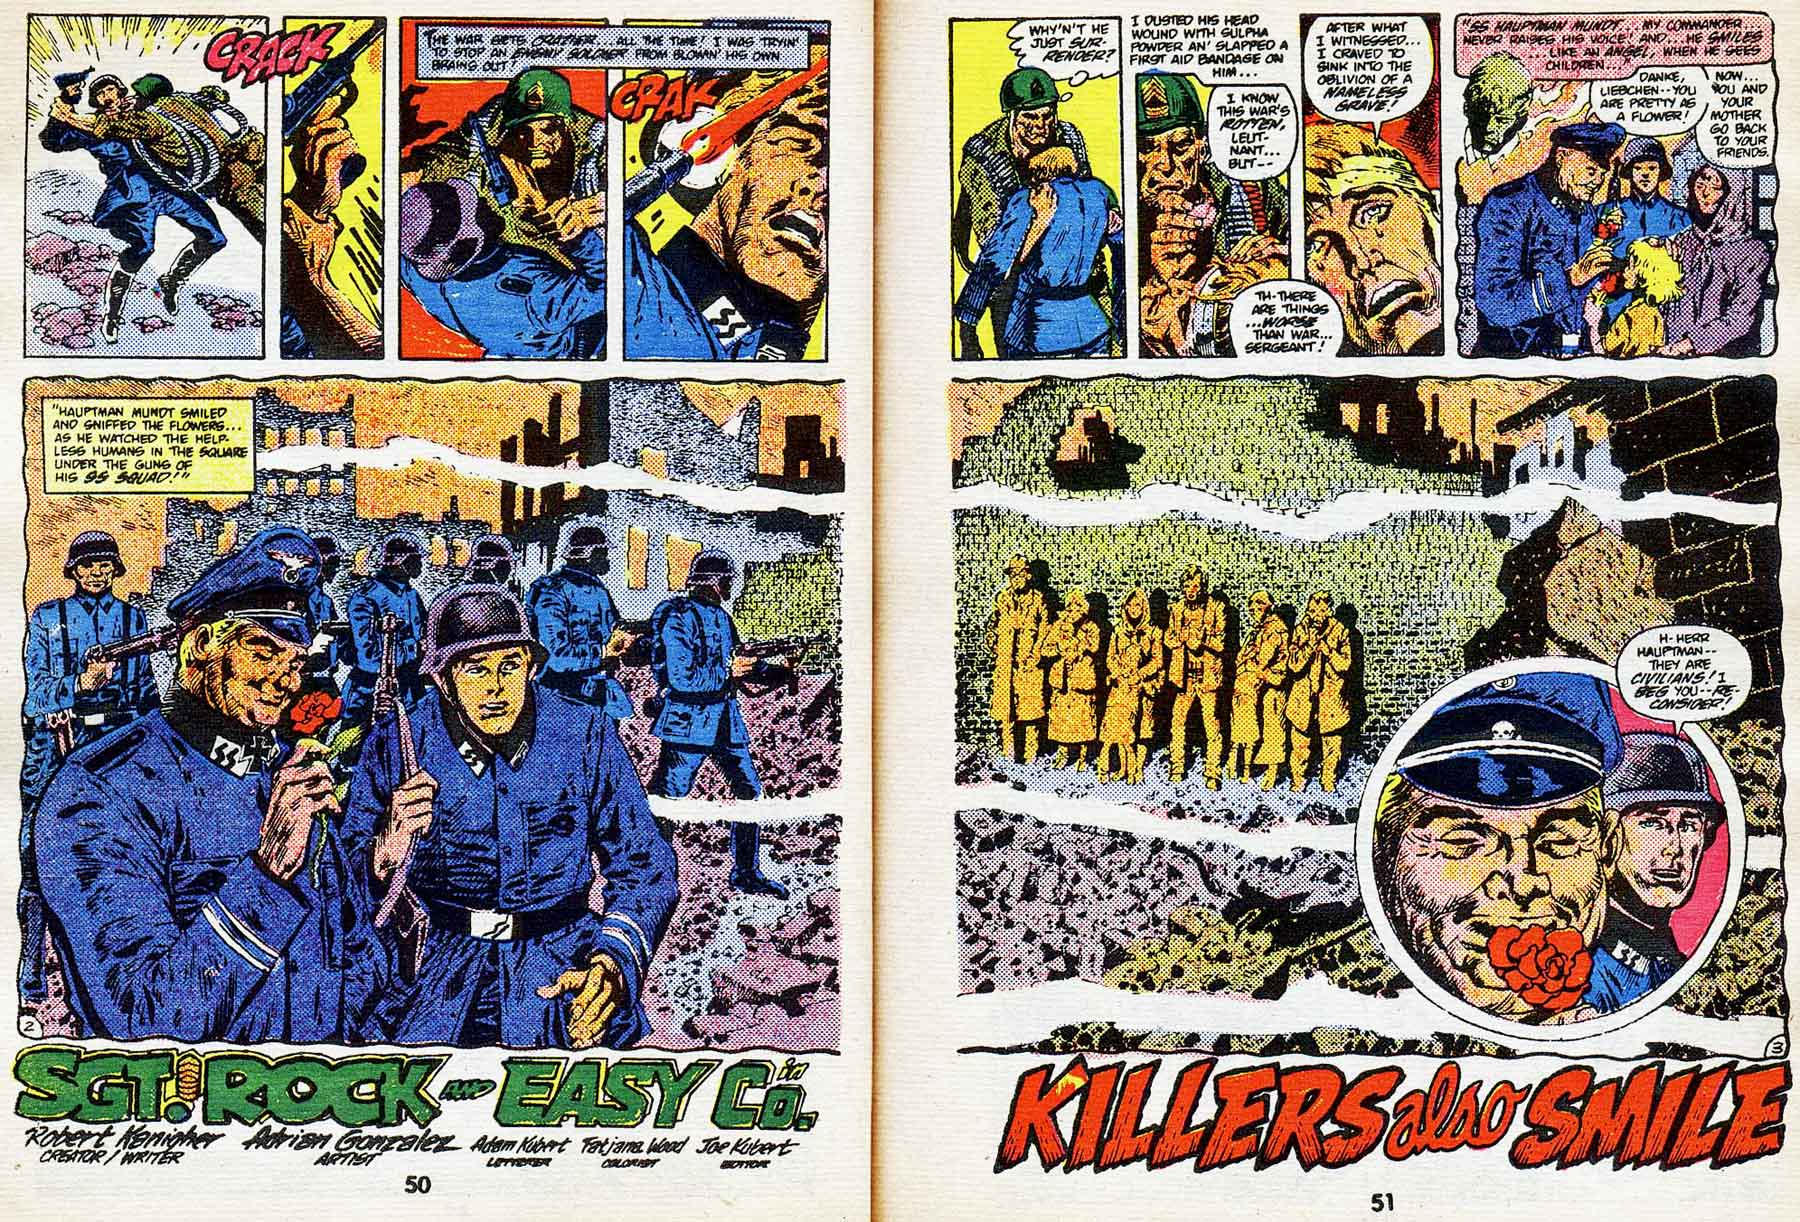 "Best of DC Blue Ribbon Digest #61: Year's Best Comic Stories 1984 - Sgt. Rock: ""Killers Also Smile"" by Robert Kanigher and Adrian Gonzales"